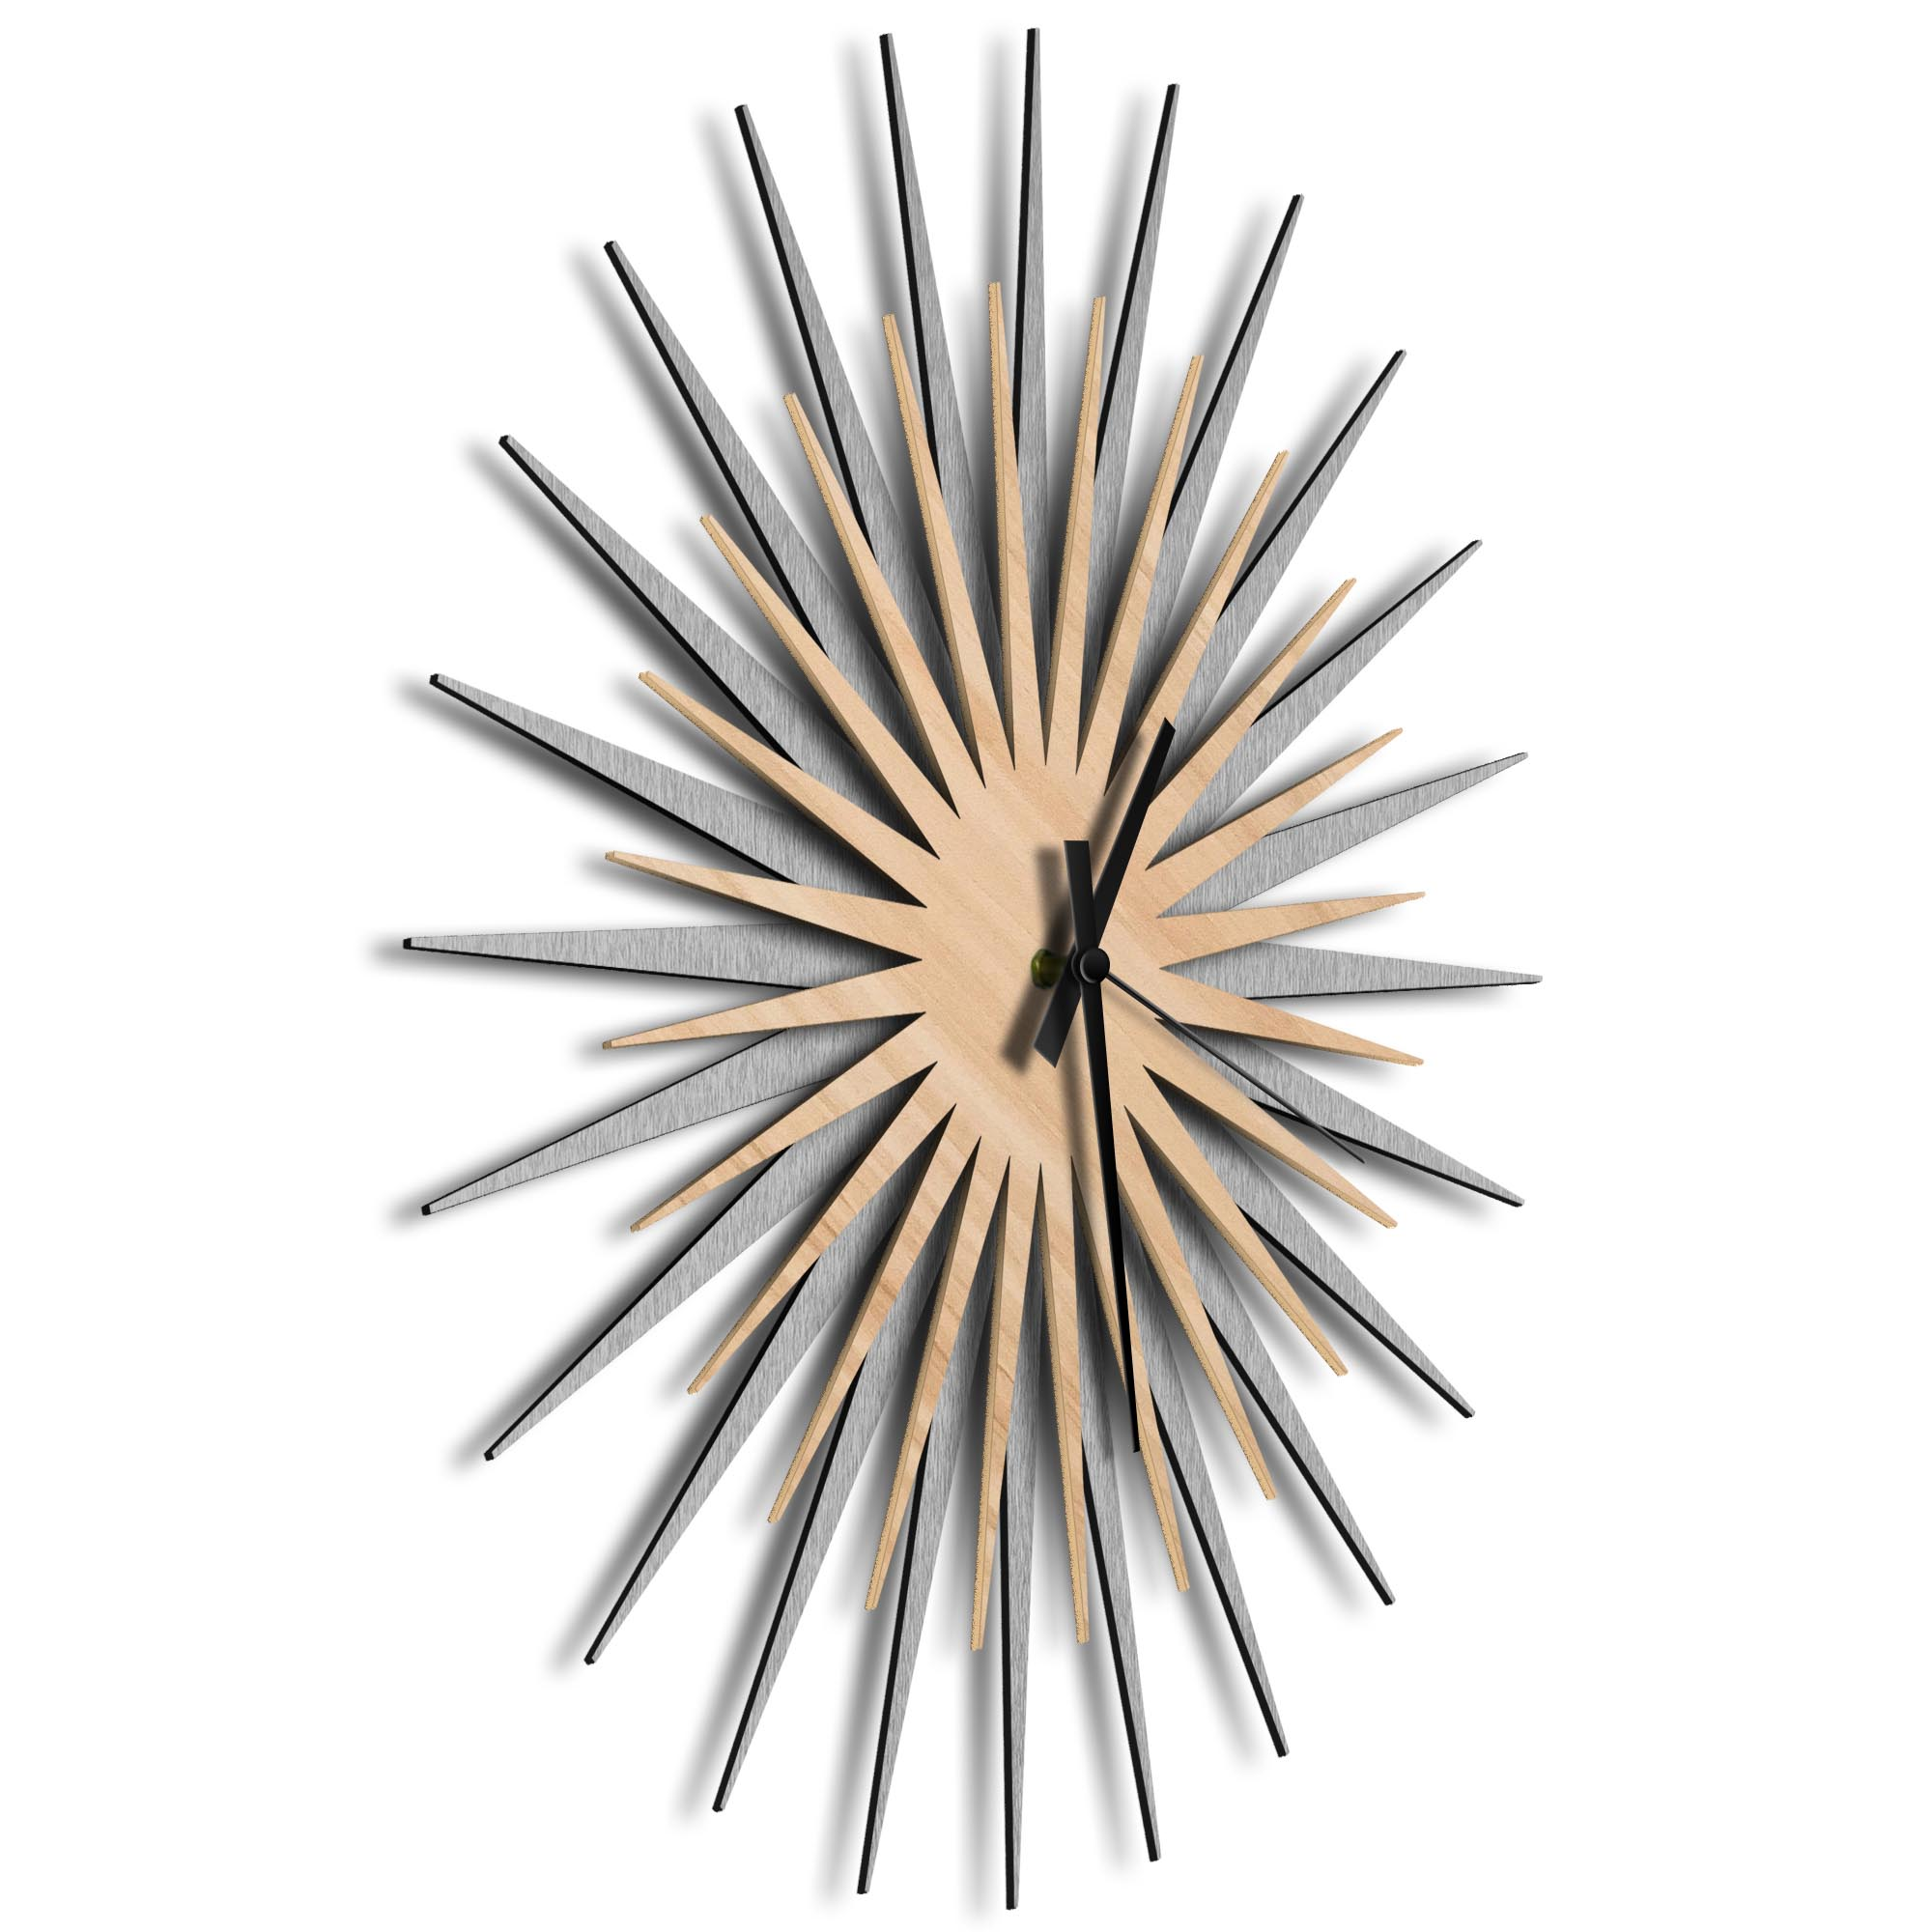 Atomic Era Clock Silver Maple Black by Adam Schwoeppe - Mid-Century Modern Clock on Brushed Silver Polymetal - Image 2